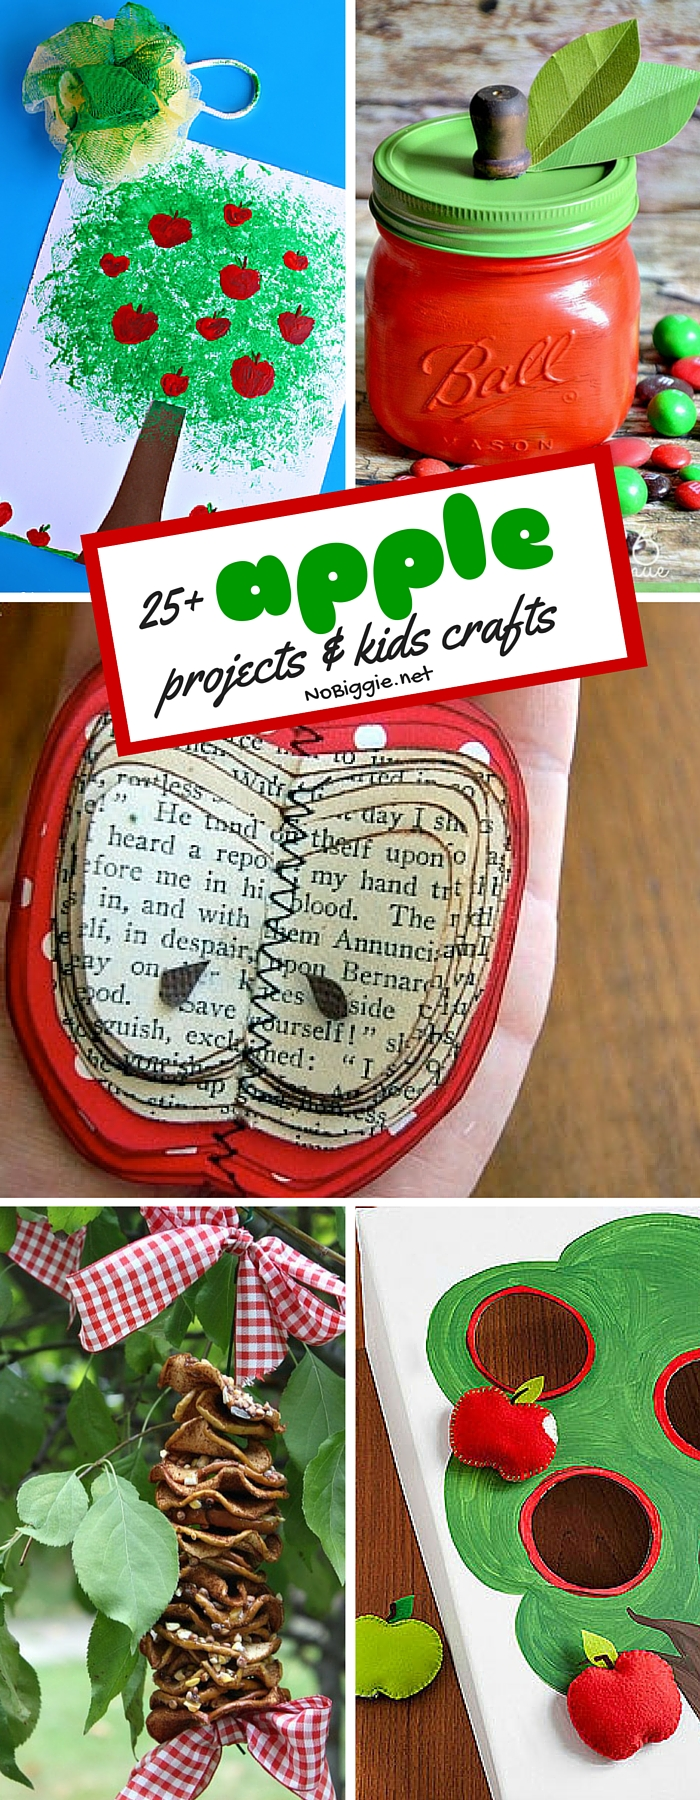 apple projects and kids crafts to get them ready for apple season. #diy #crafts #apple #applecrafts #kidscrafts